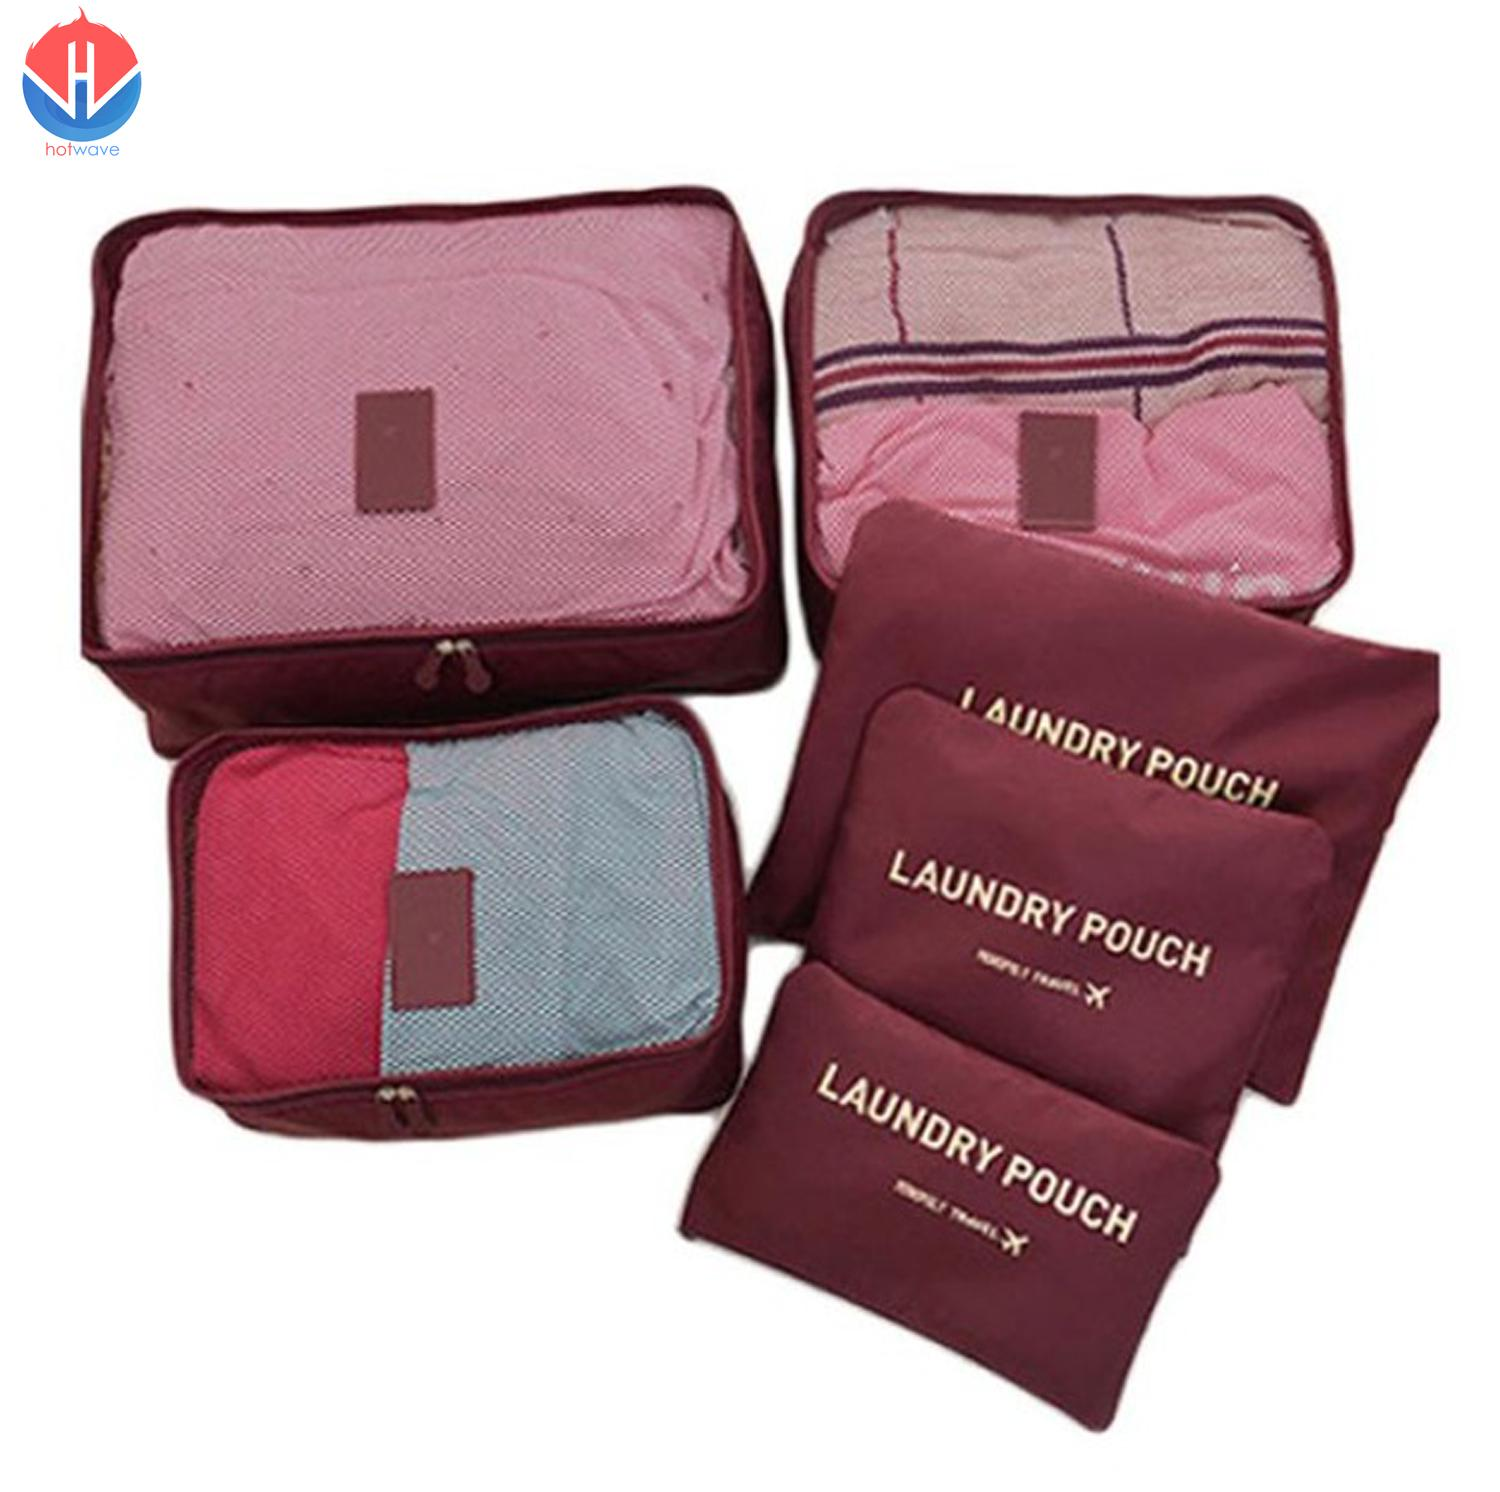 6 in 1 Travel Laundry secret pouch Clothes Luggage Organizer Set Packing Cube (Brown)